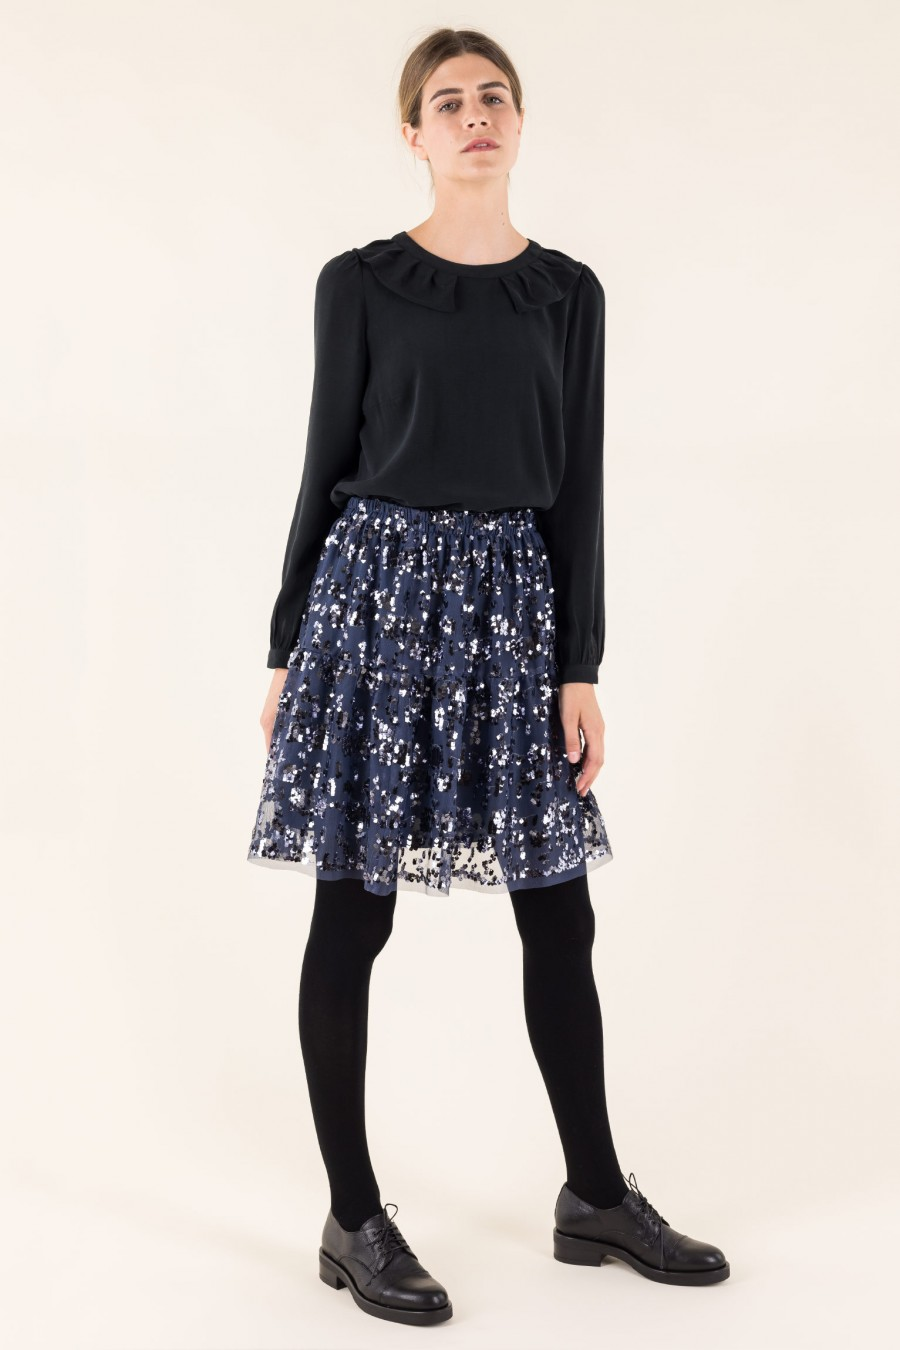 Skirt with blue sequins